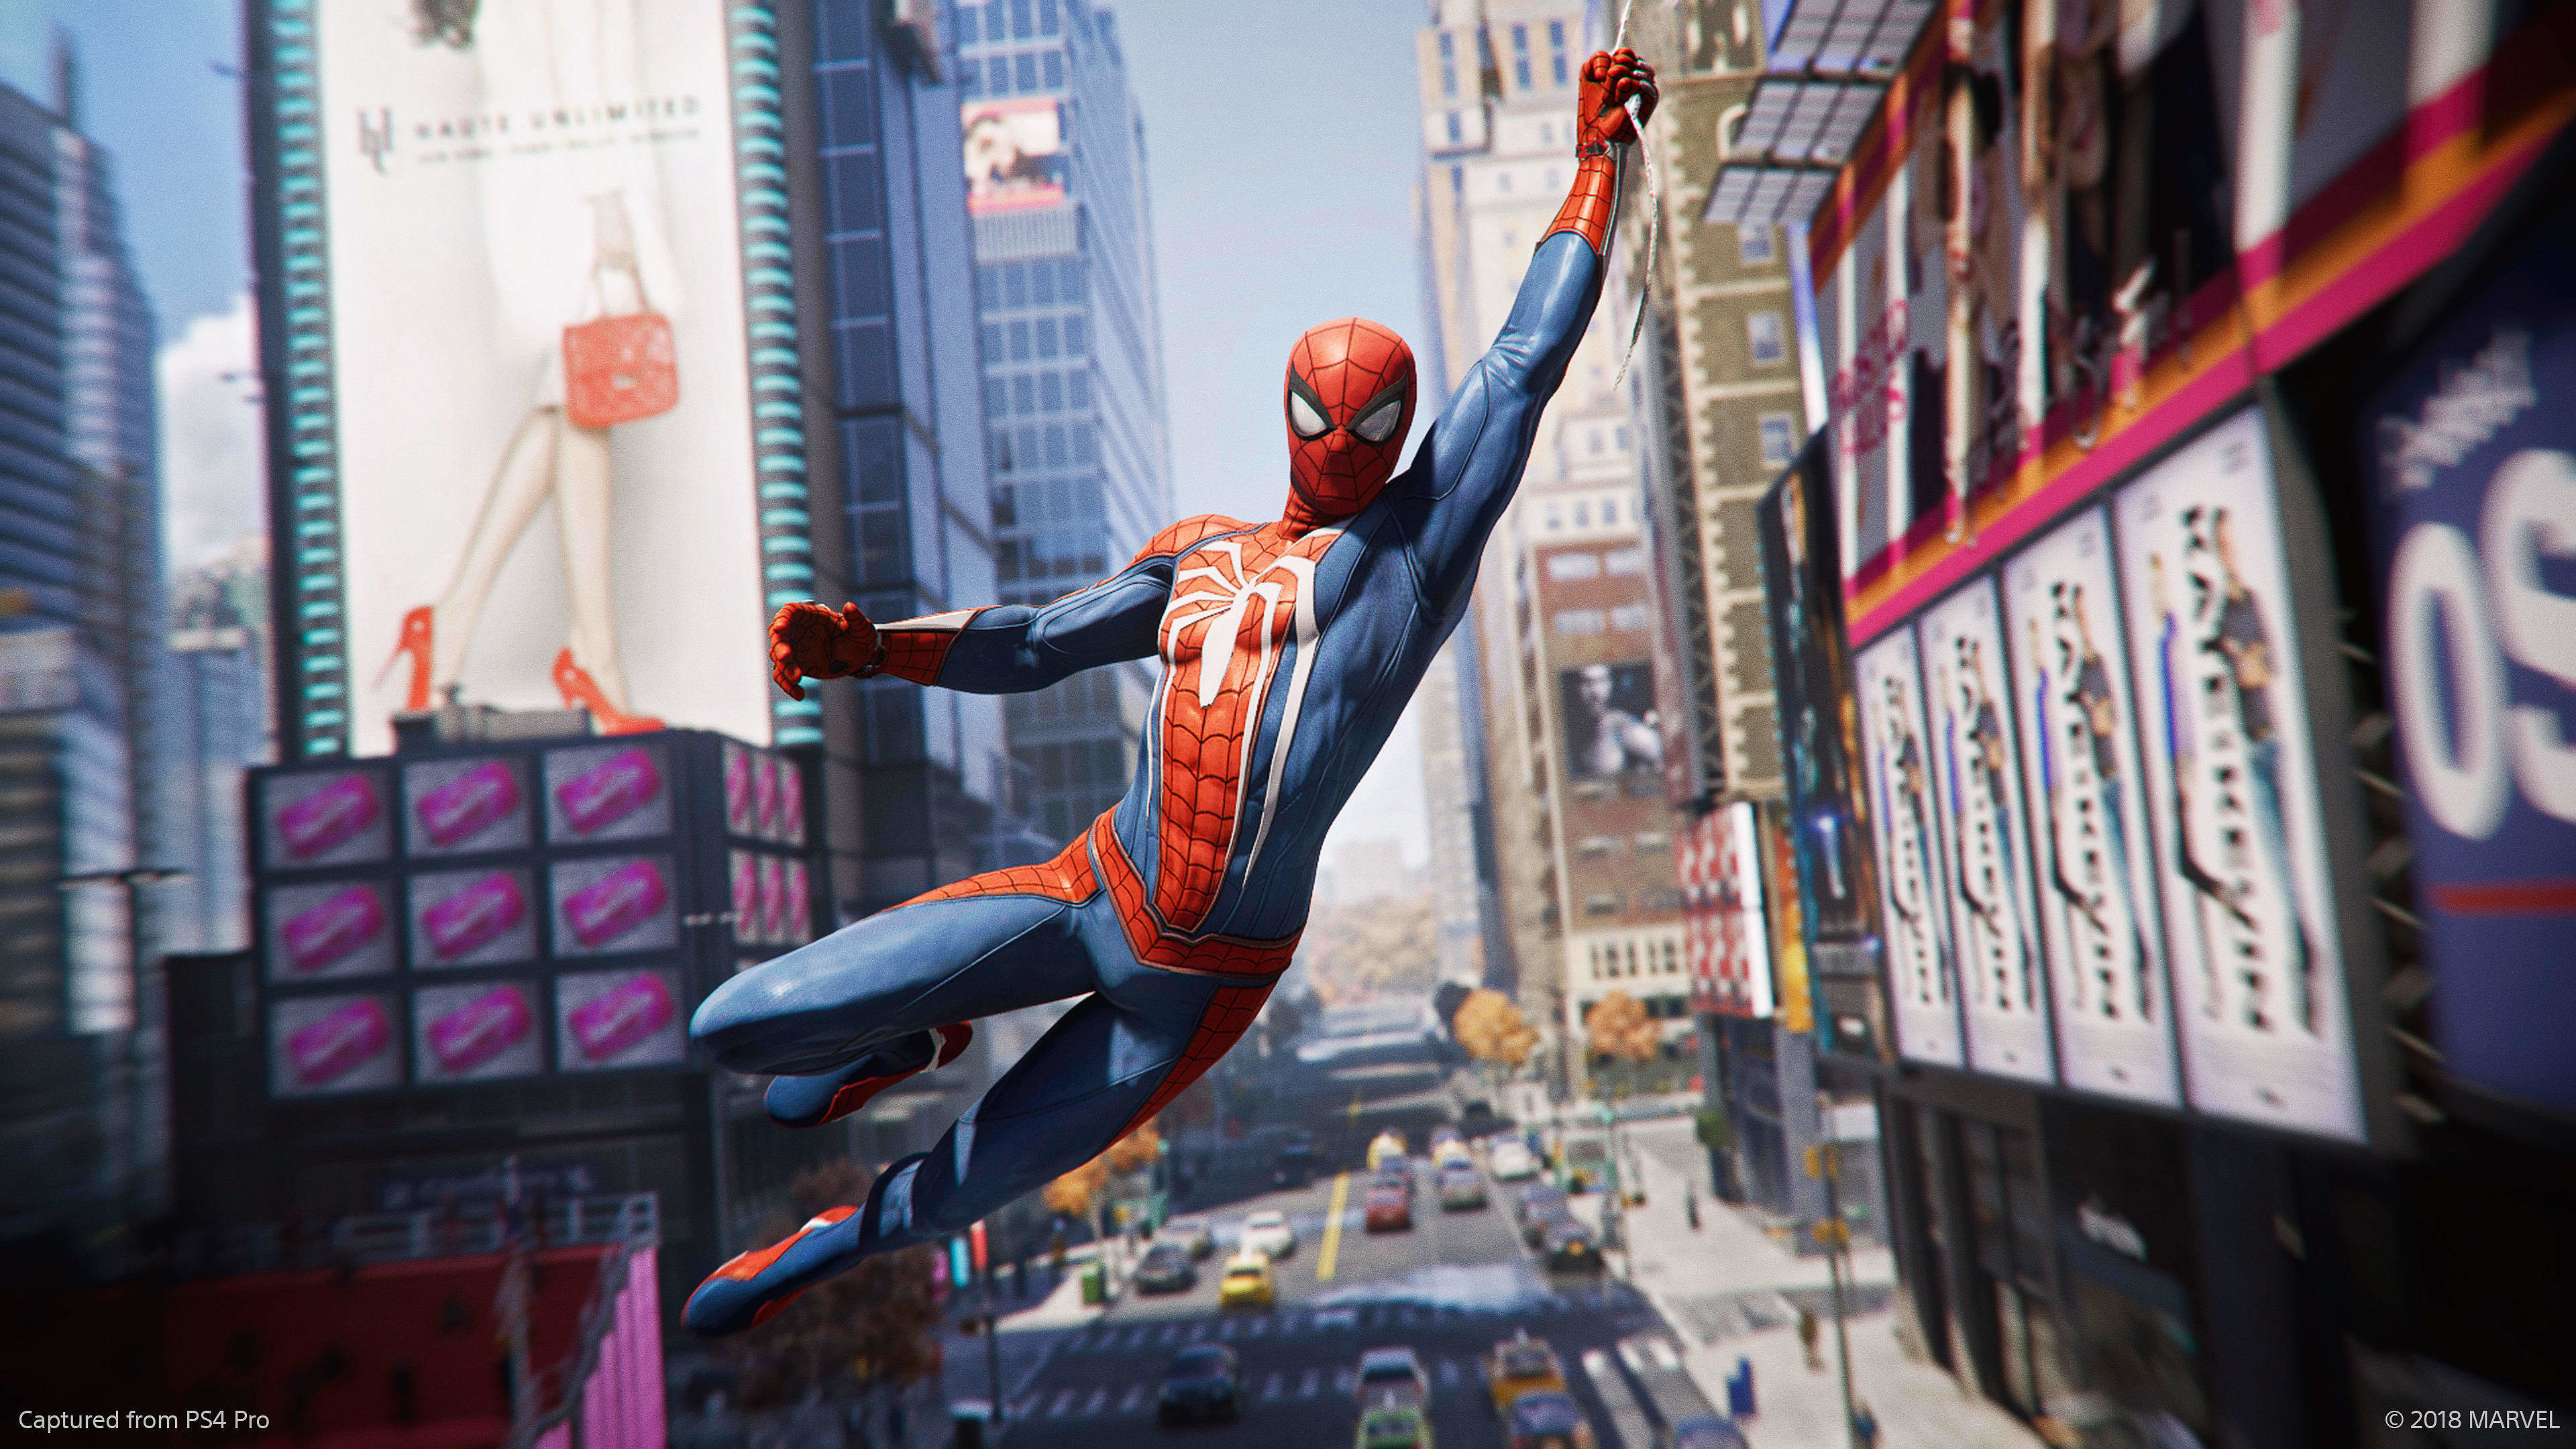 Download 3840x2160 Wallpaper Spider Man Ps4 Video Game